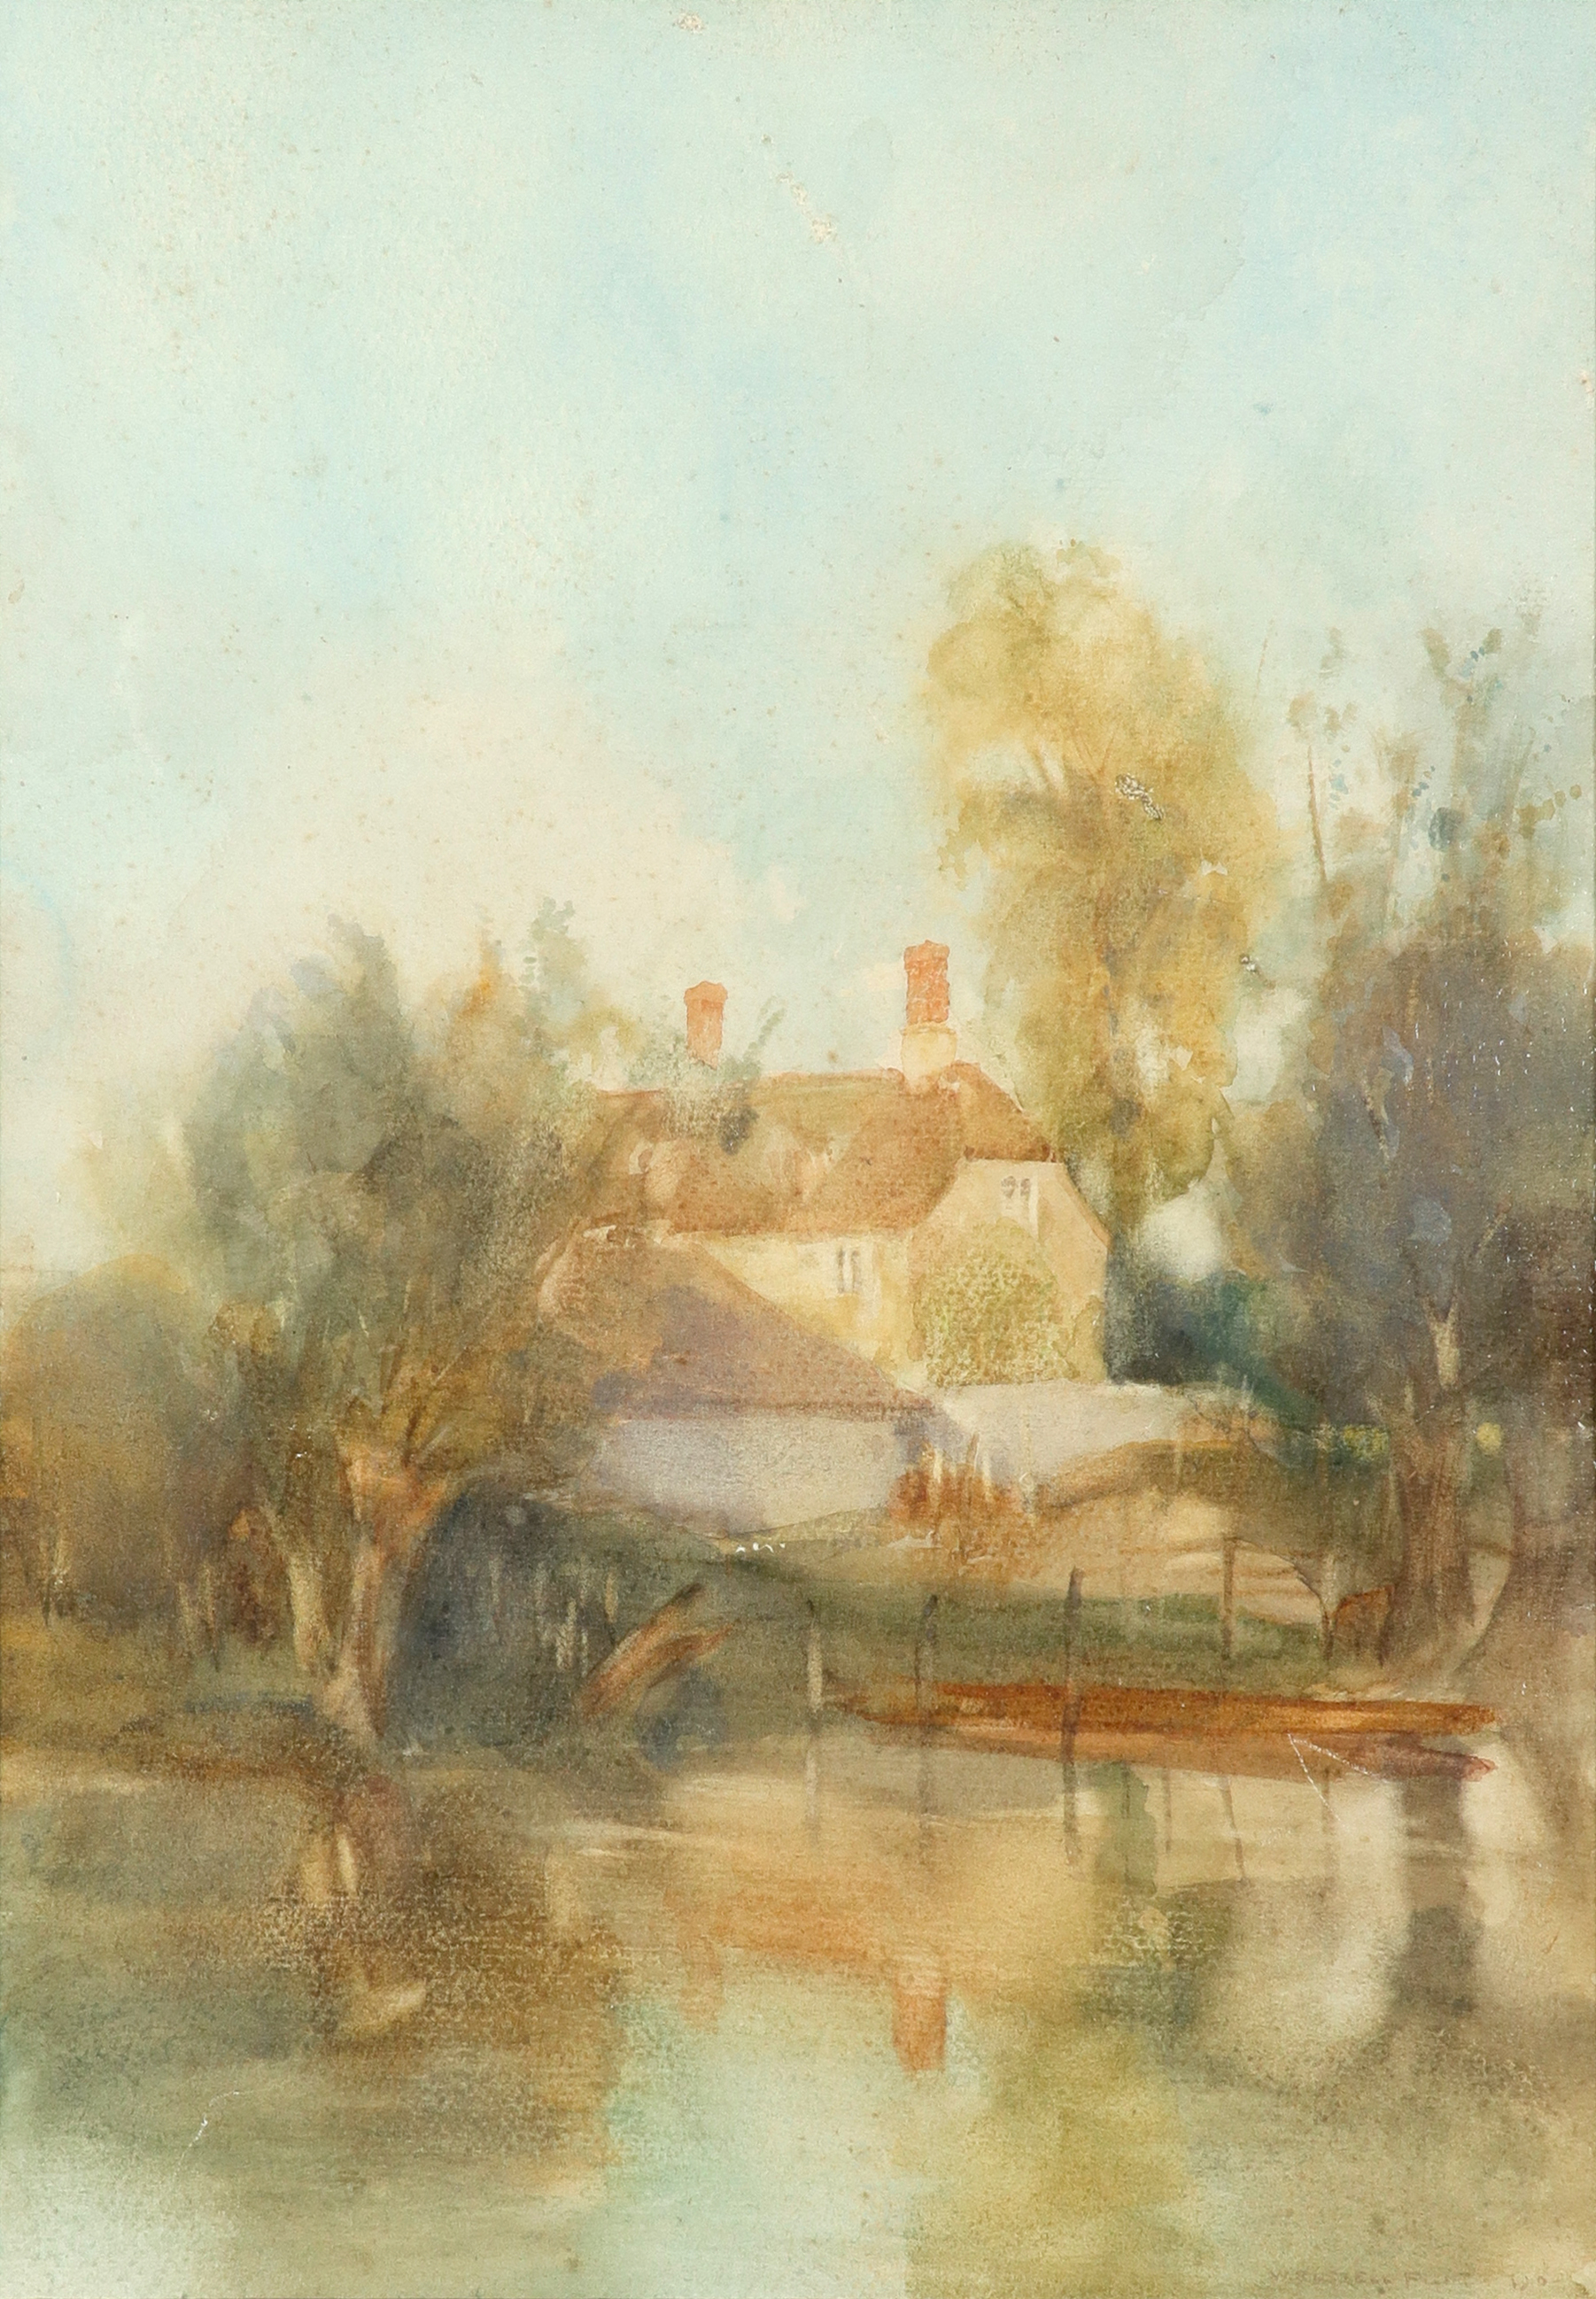 ‡Sir William Russell Flint RA, ROI (Scottish 1880-1869) View of a house by the river Signed and